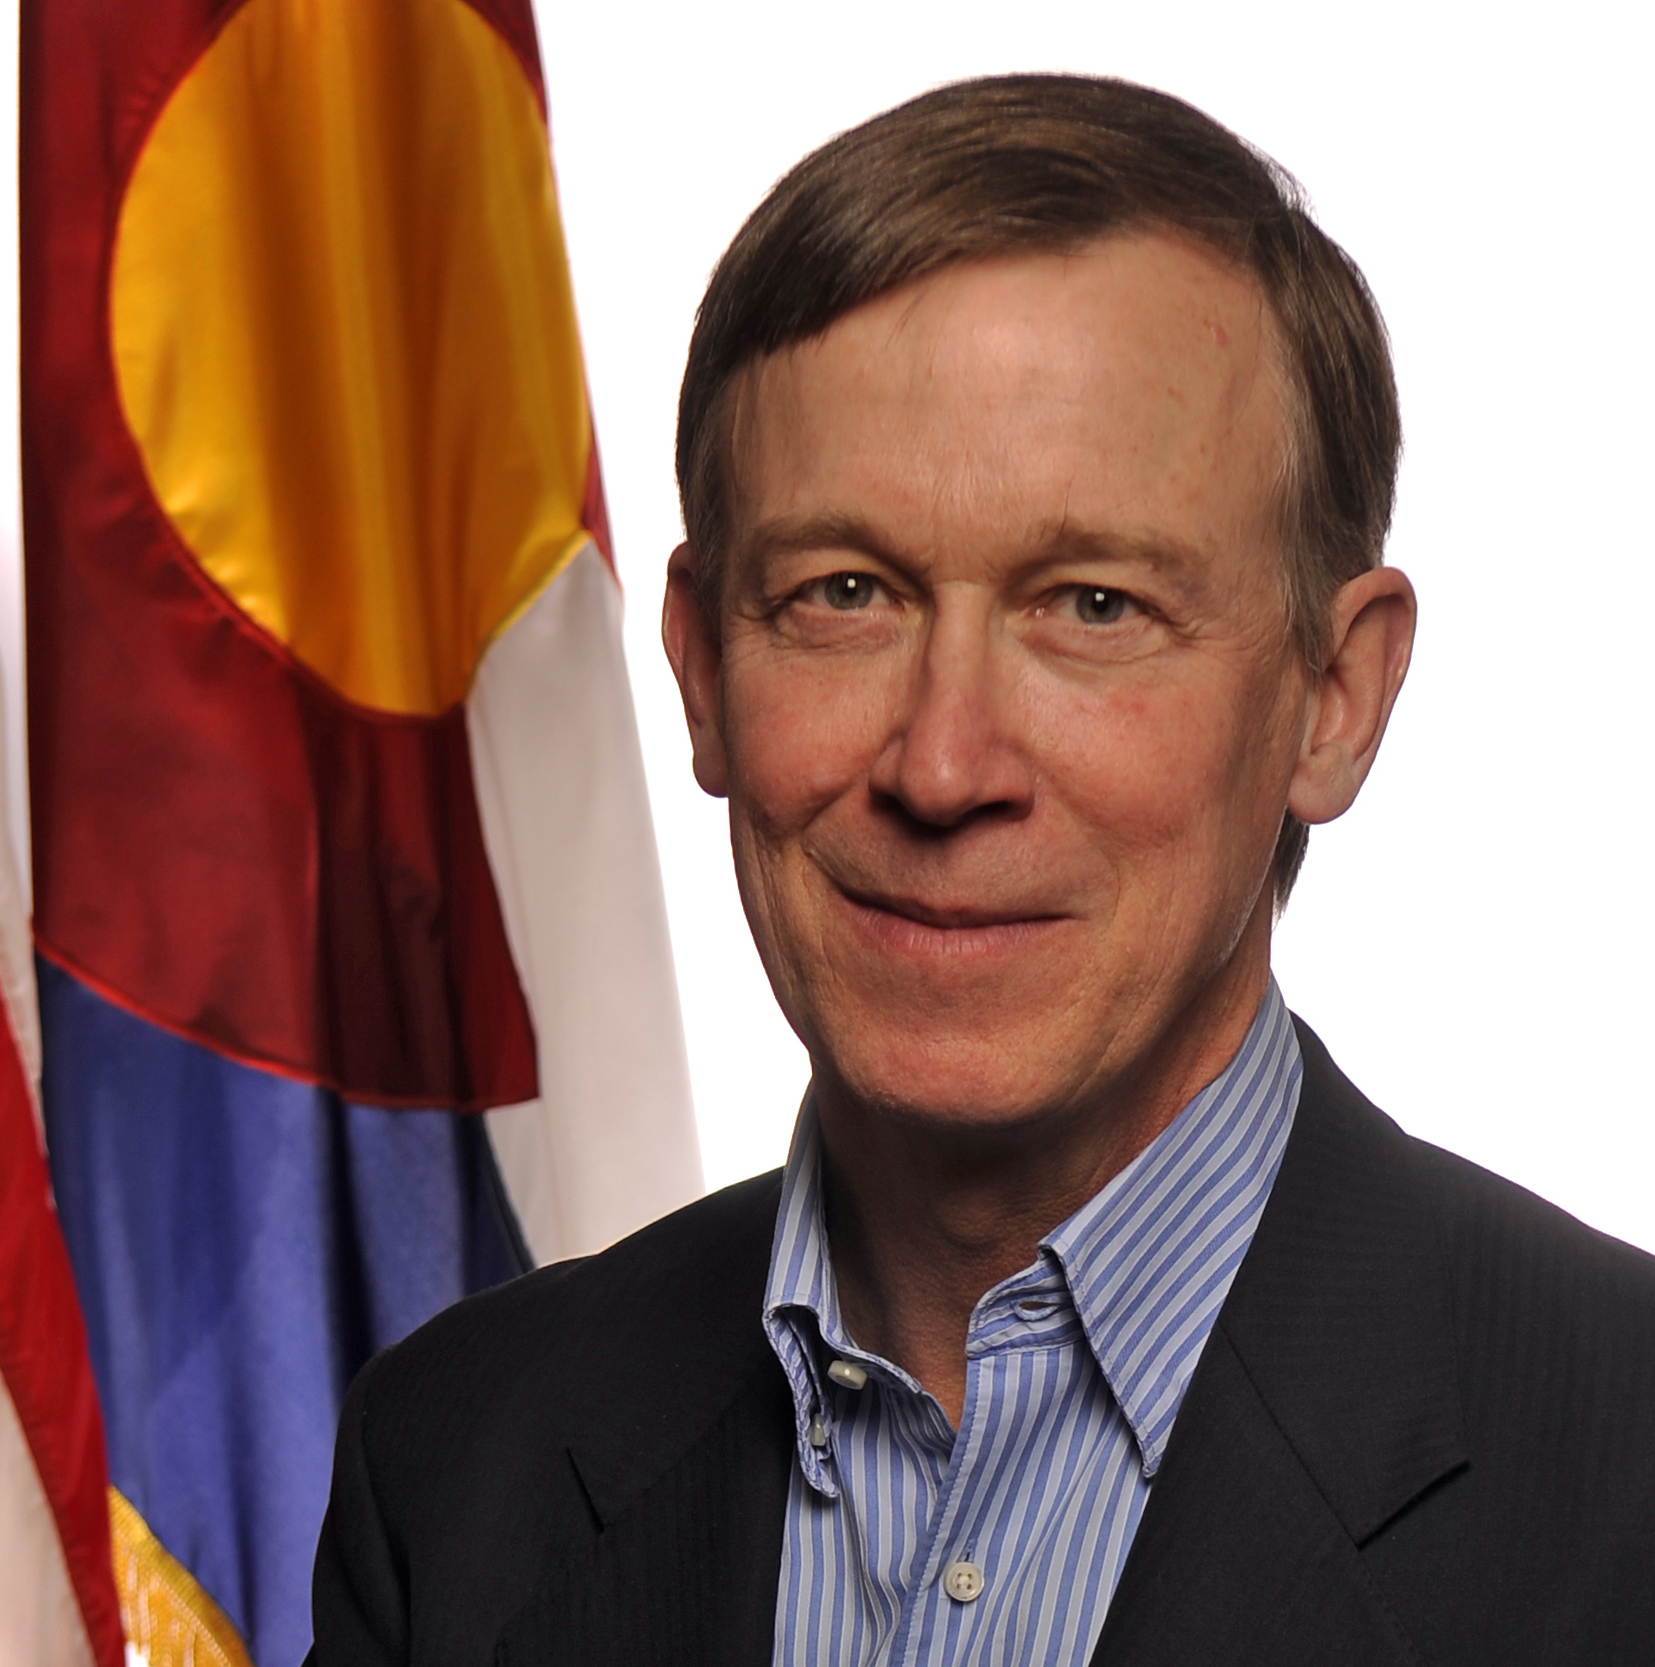 John Hickenlooper, Governor, Colorado